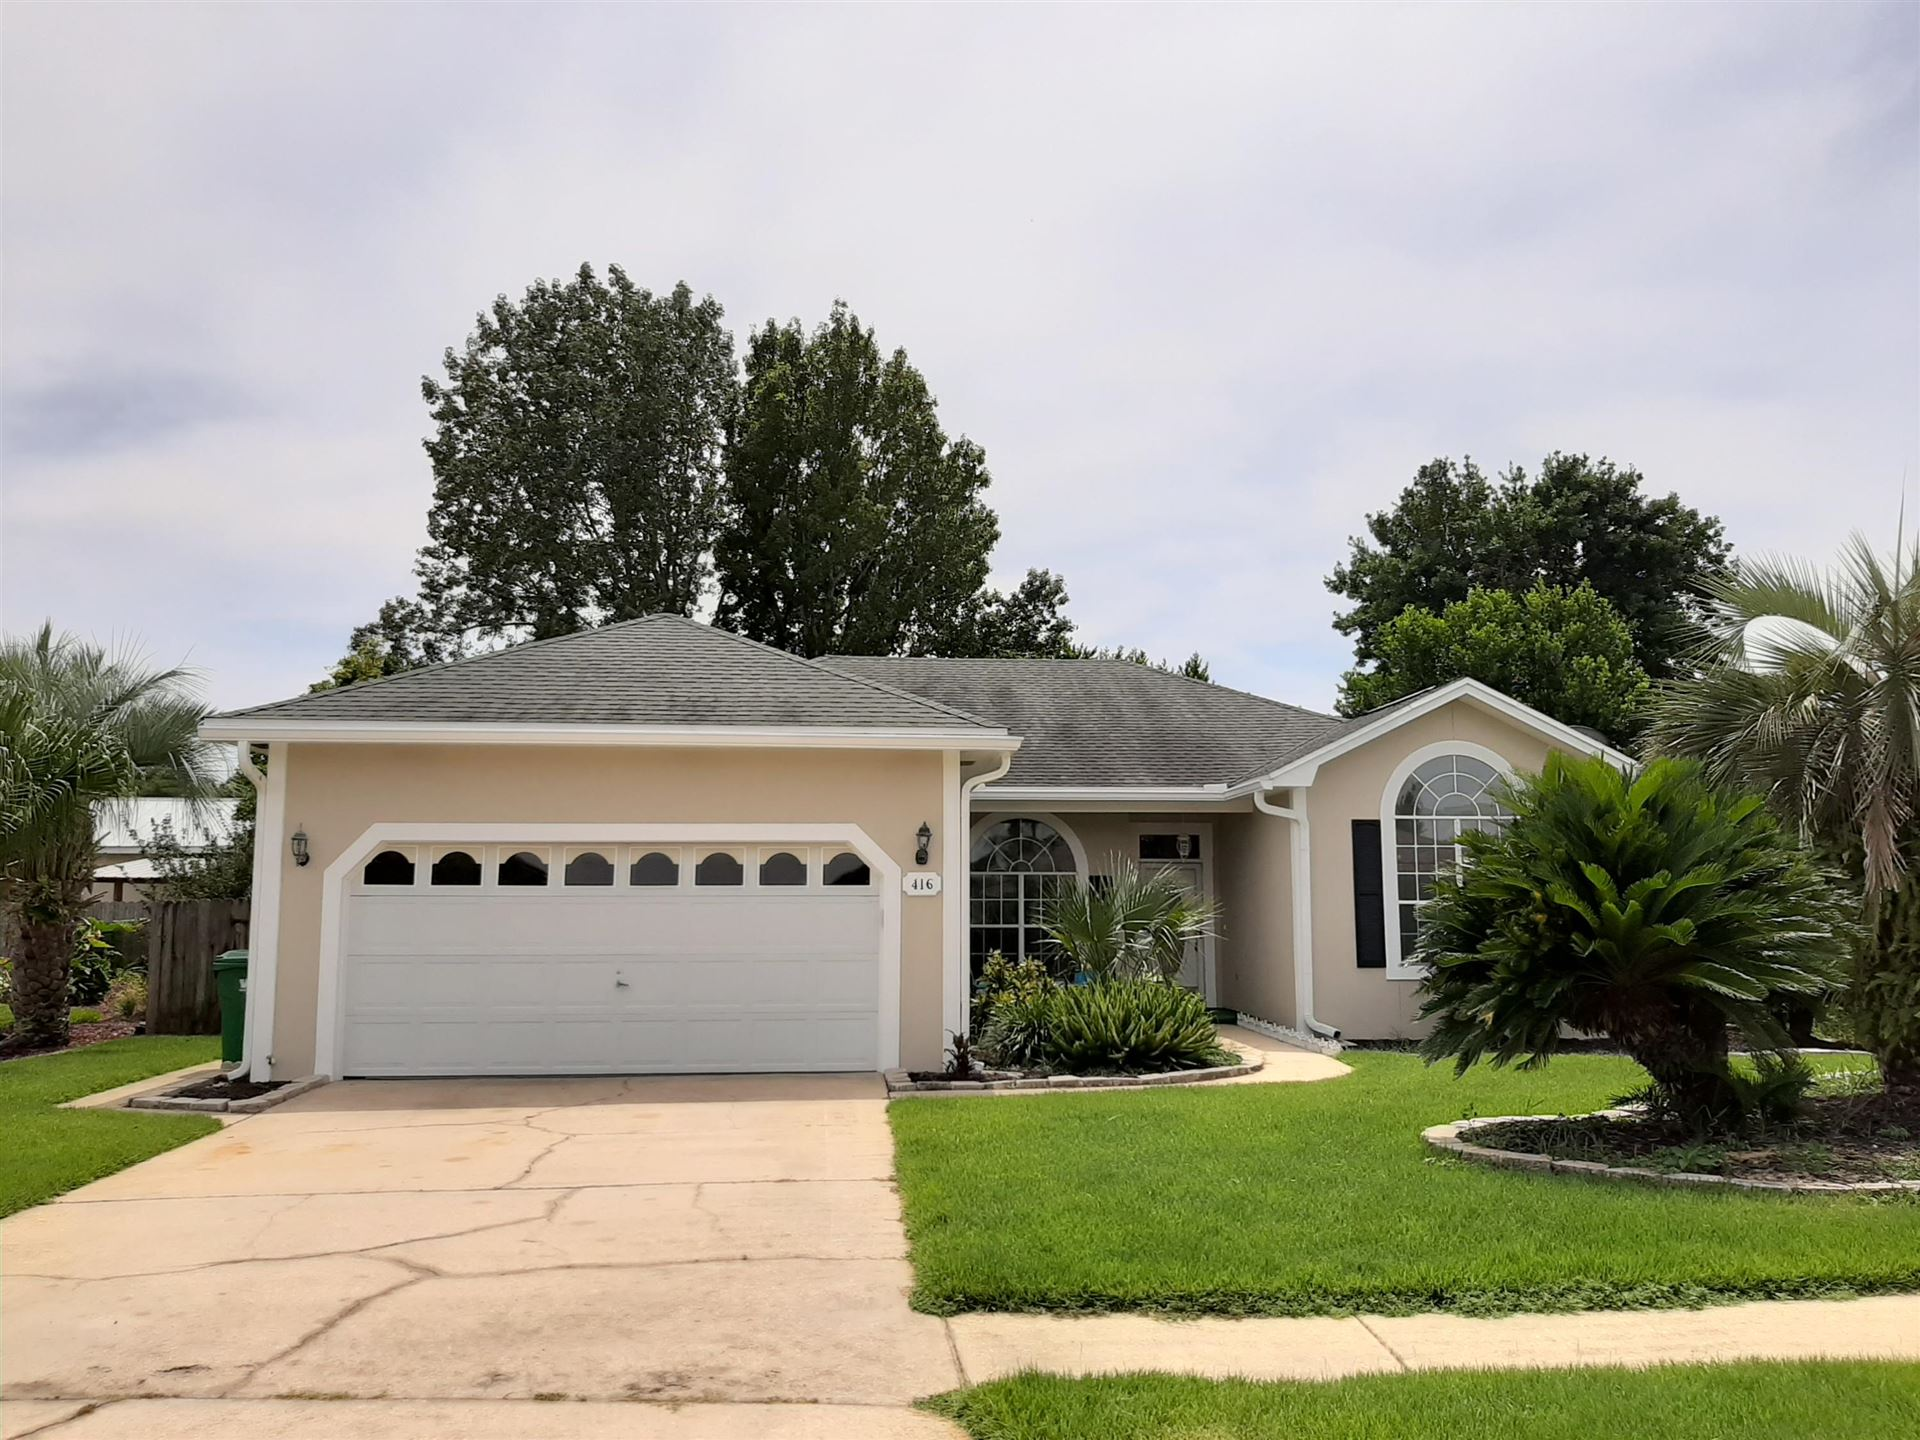 Property Image Of 416 Ridge Wood Circle In Destin, Fl